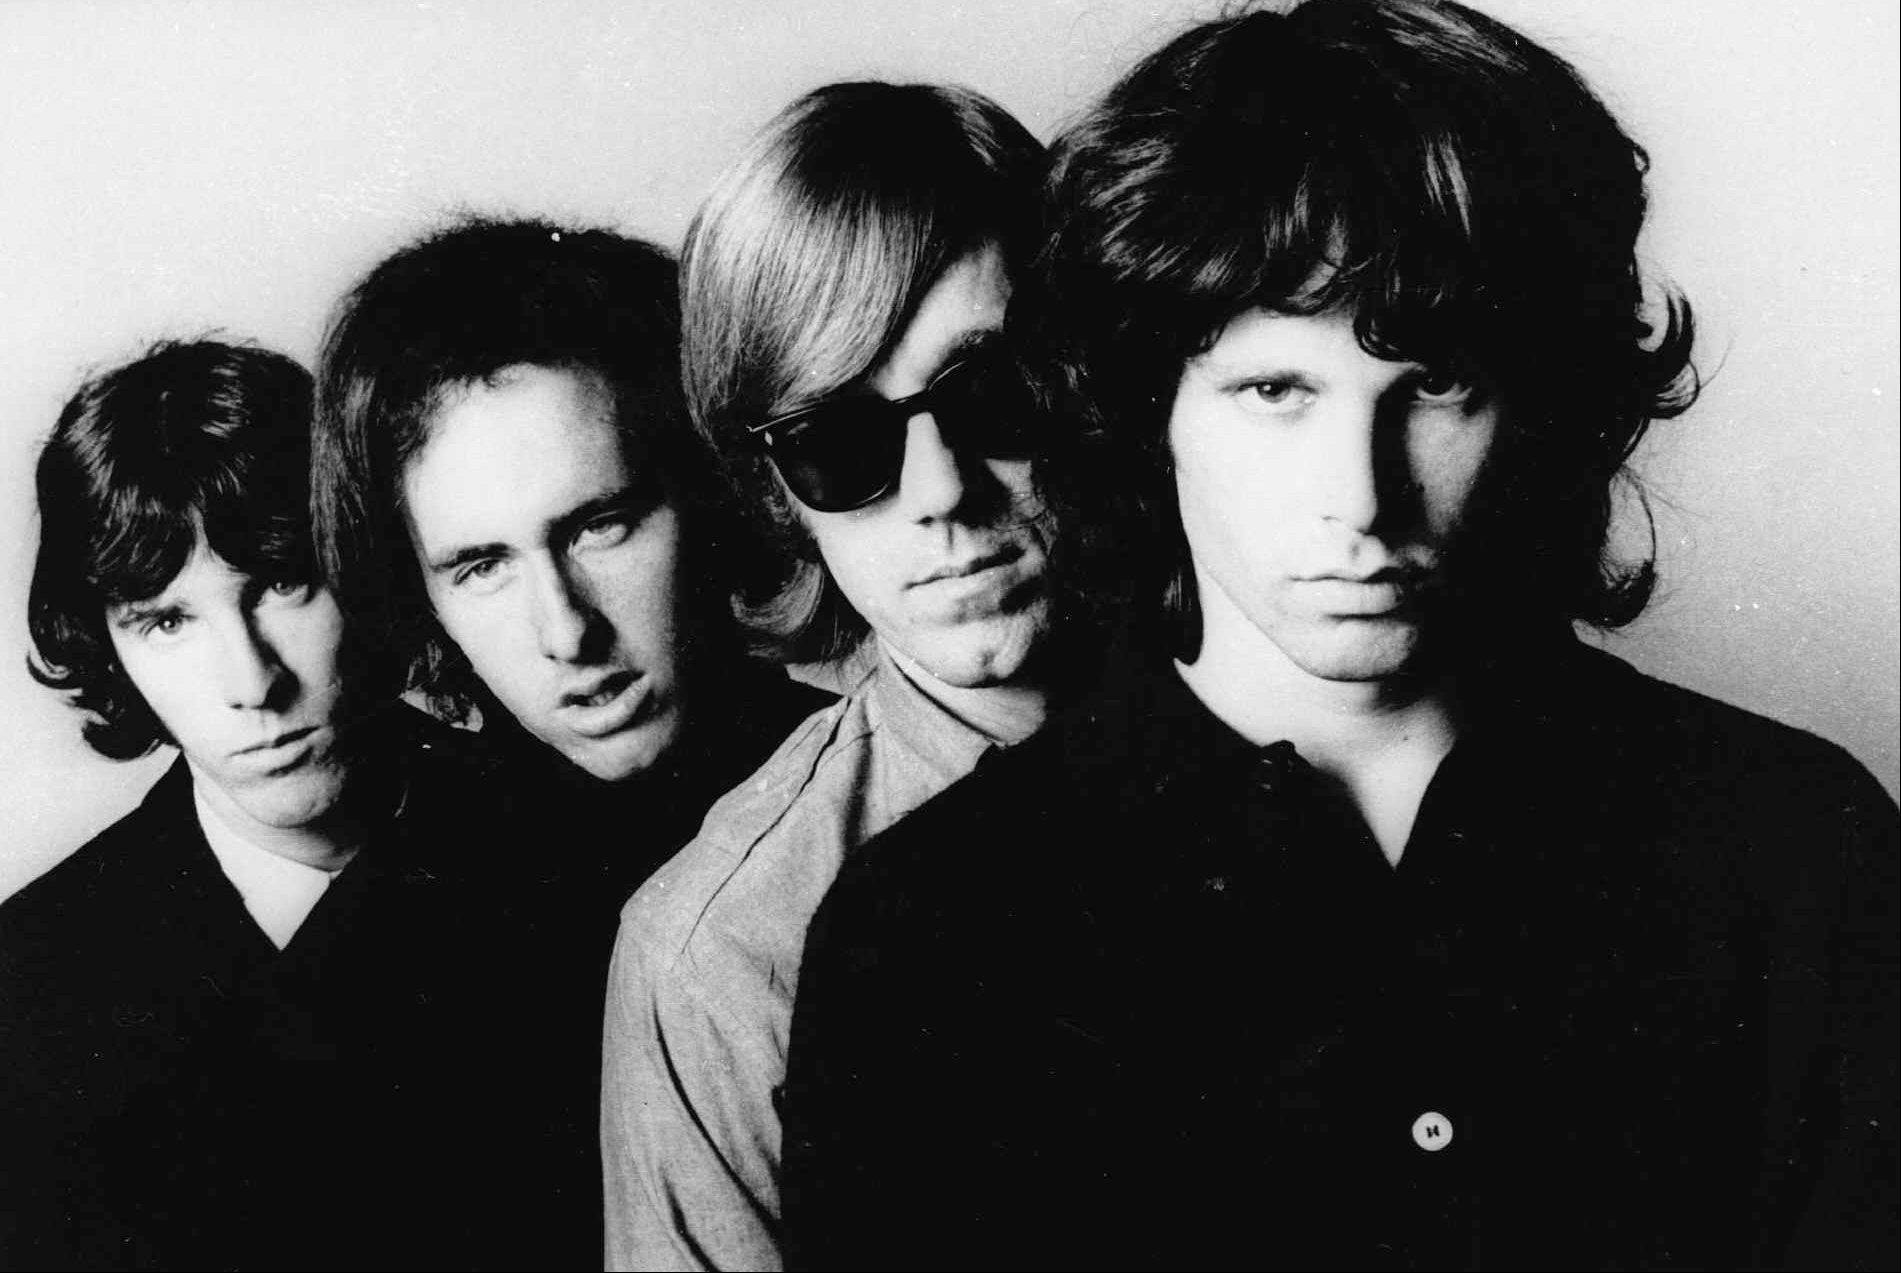 In this undated publicity file photo, members of the Doors, from left, John Densmore, Robbie Krieger, Ray Manzarek and Jim Morrison, pose for a portrait. Manzarek, the keyboardist who was a founding member of The Doors, has died at 74. Publicist Heidi Robinson-Fitzgerald says in a news release that Manzarek died Monday, May 20, 2013, at the RoMed Clinic in Rosenheim, Germany, surrounded by his family.